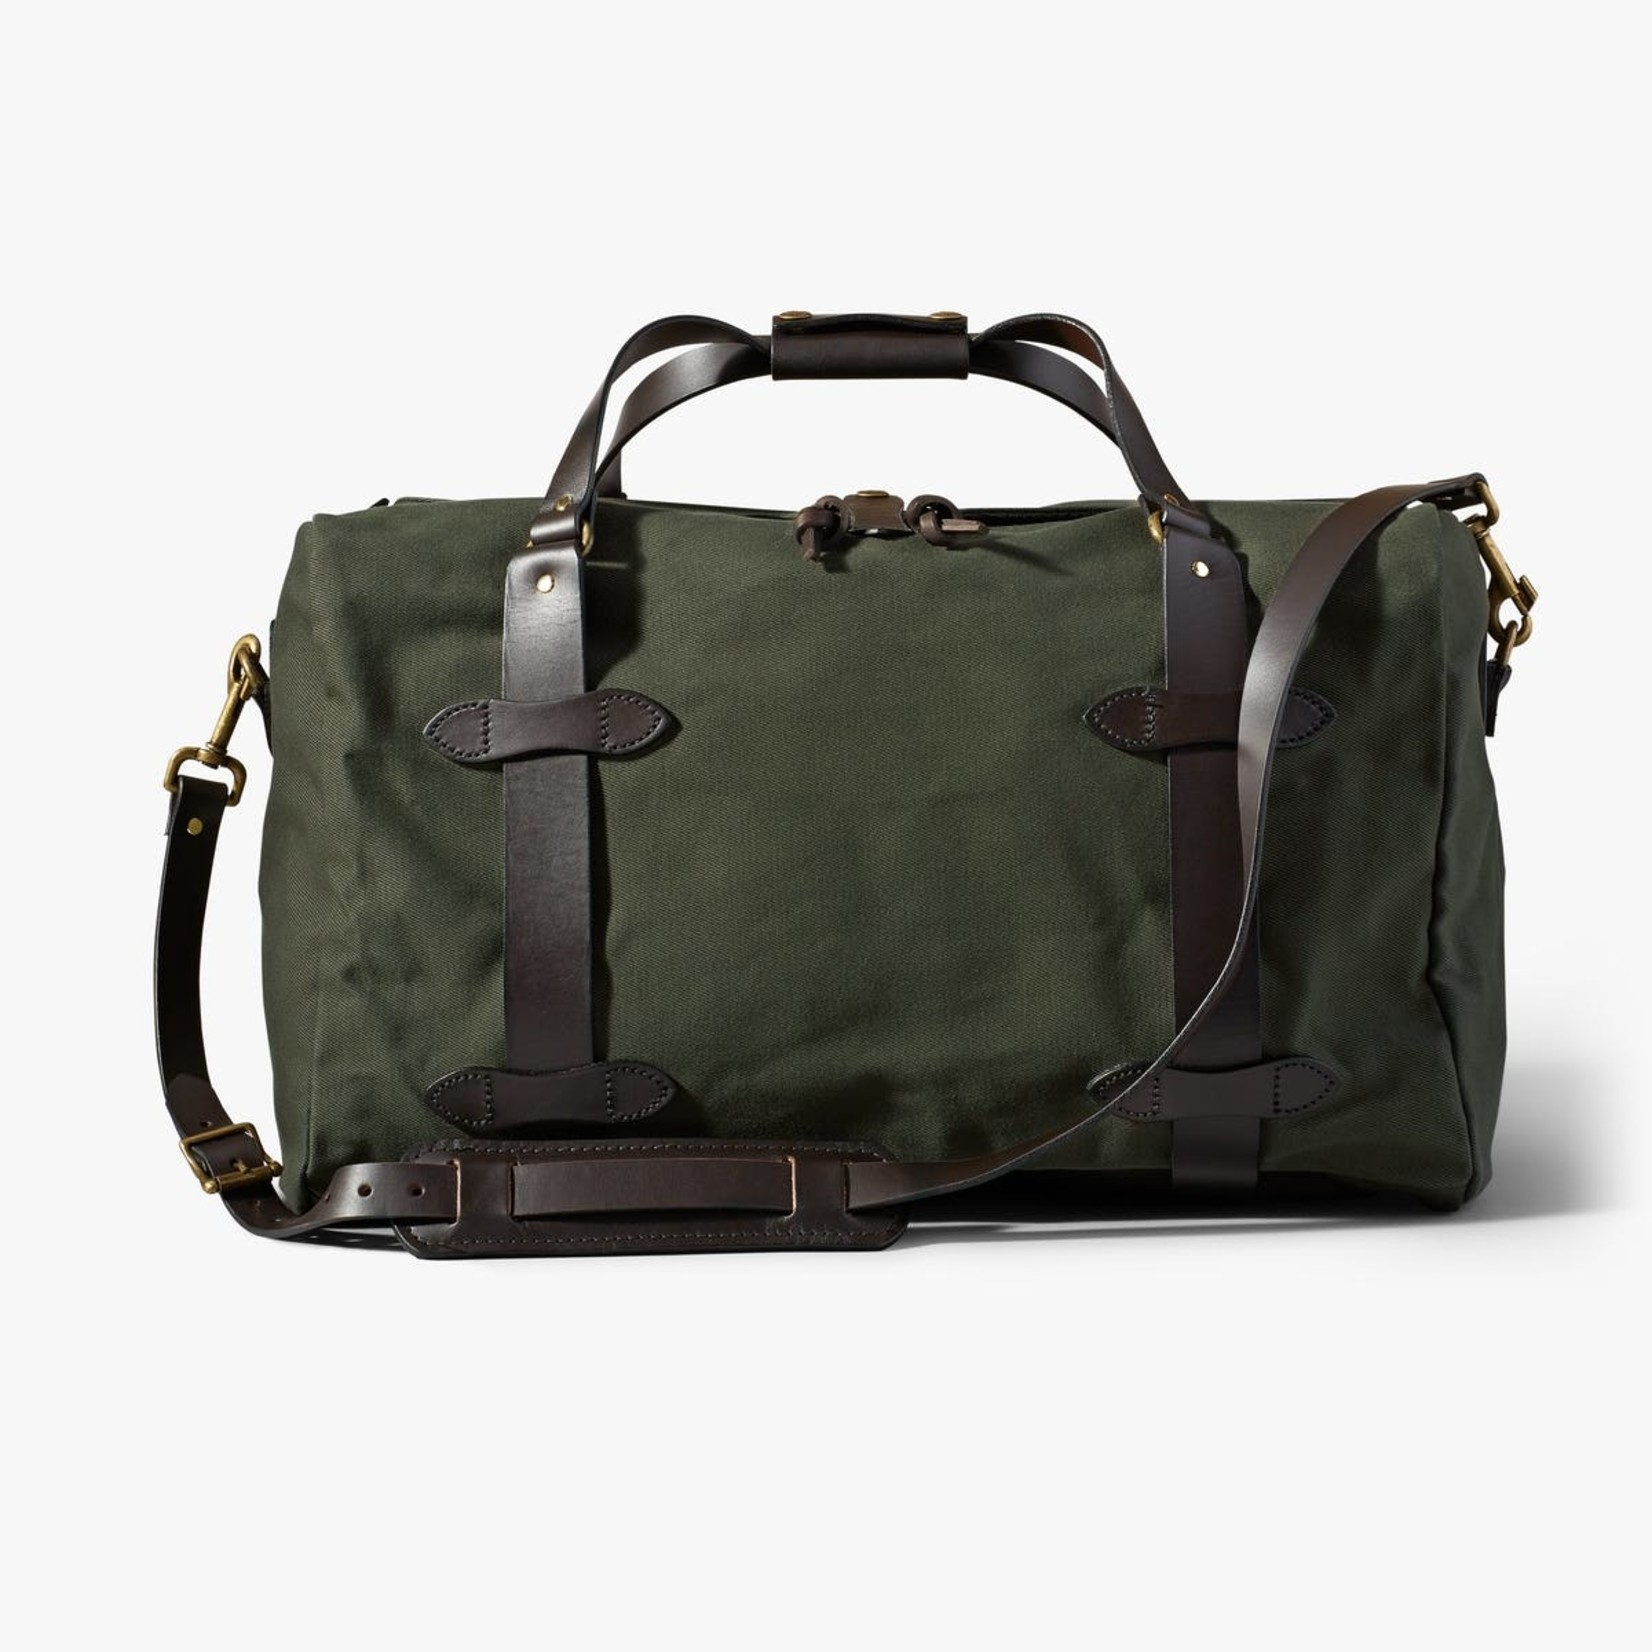 Filson Filson Rugged Twill Medium Duffle